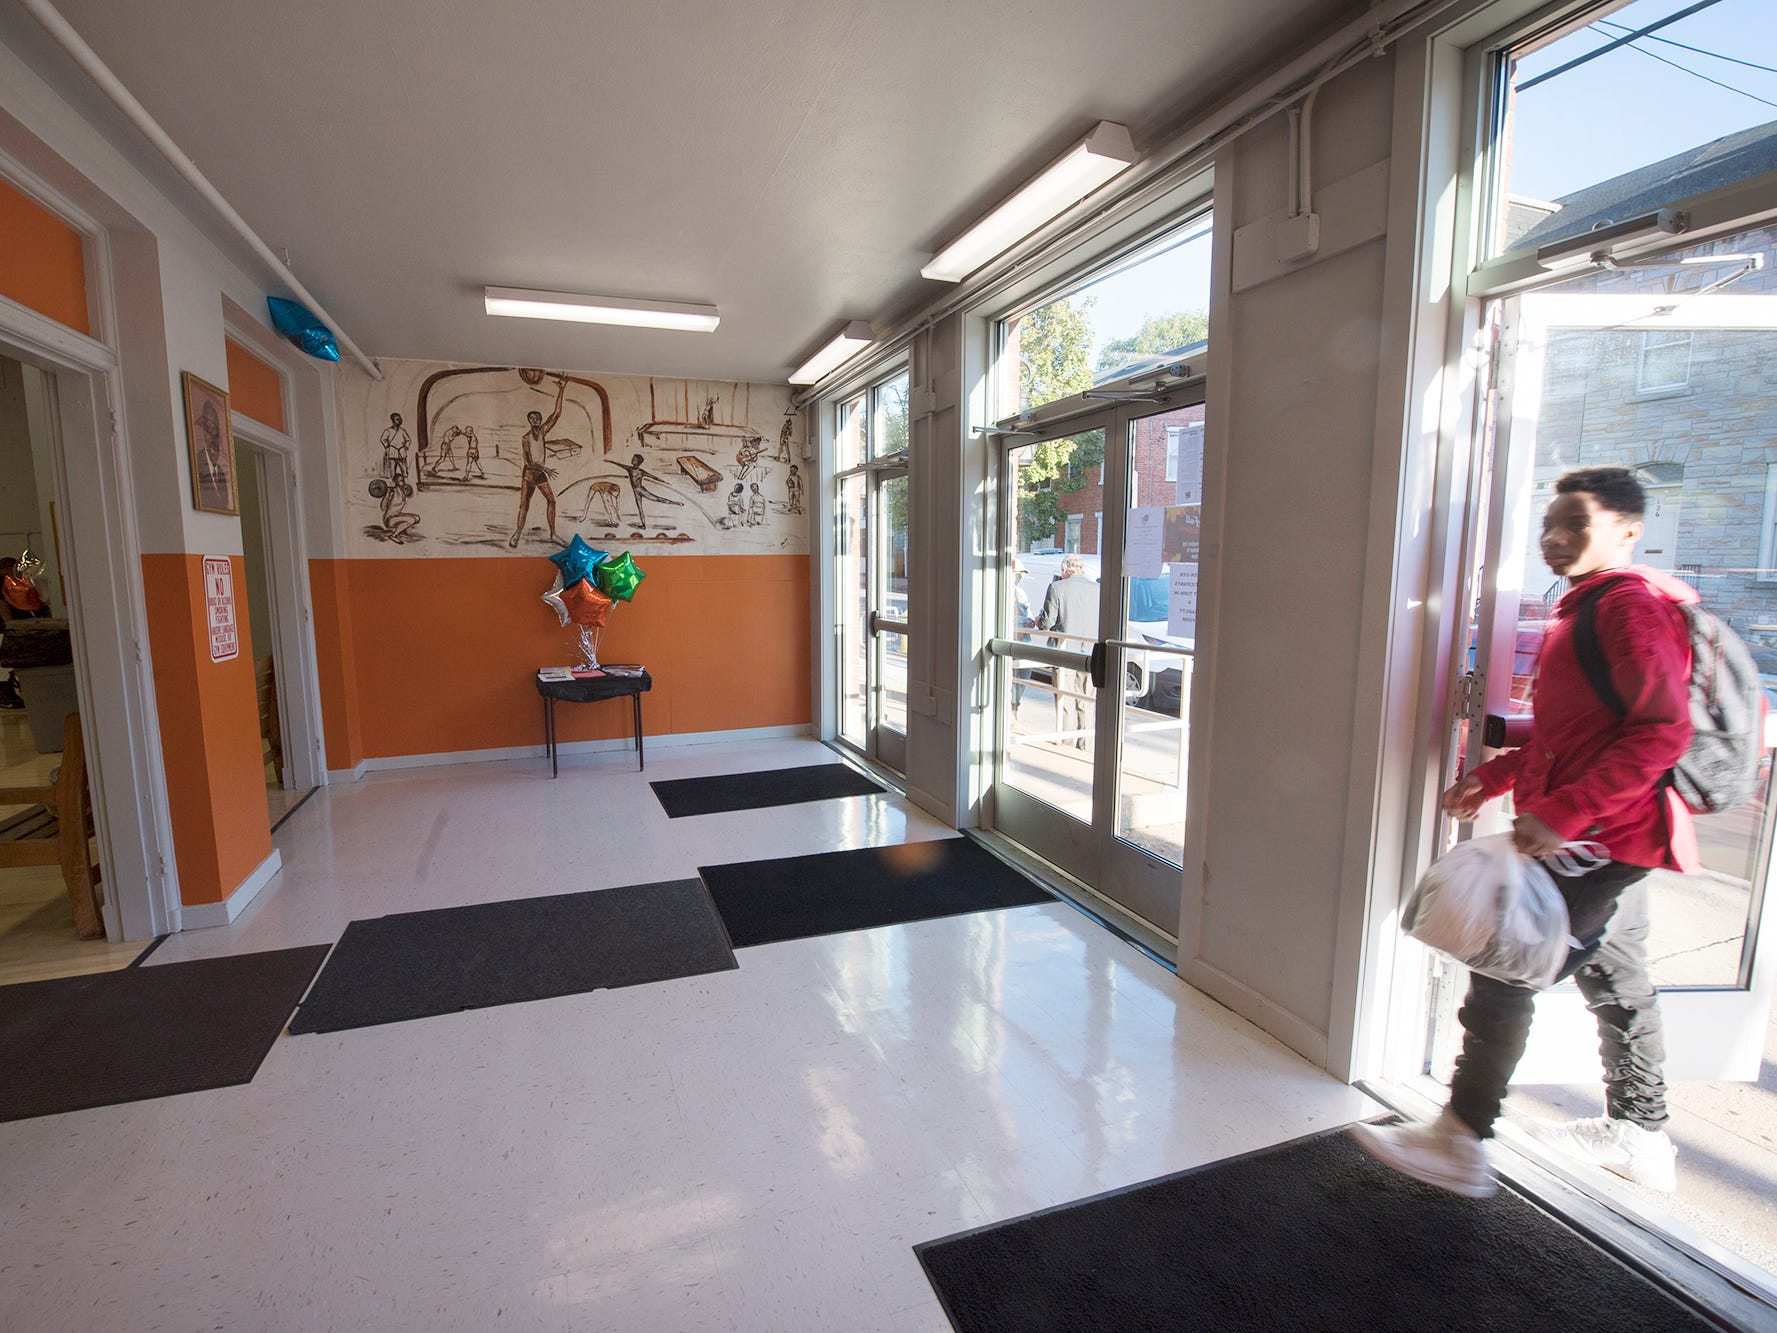 New glass doors replaced old solid ones that were hard to open at the front entrance to Voni Grimes Gym.